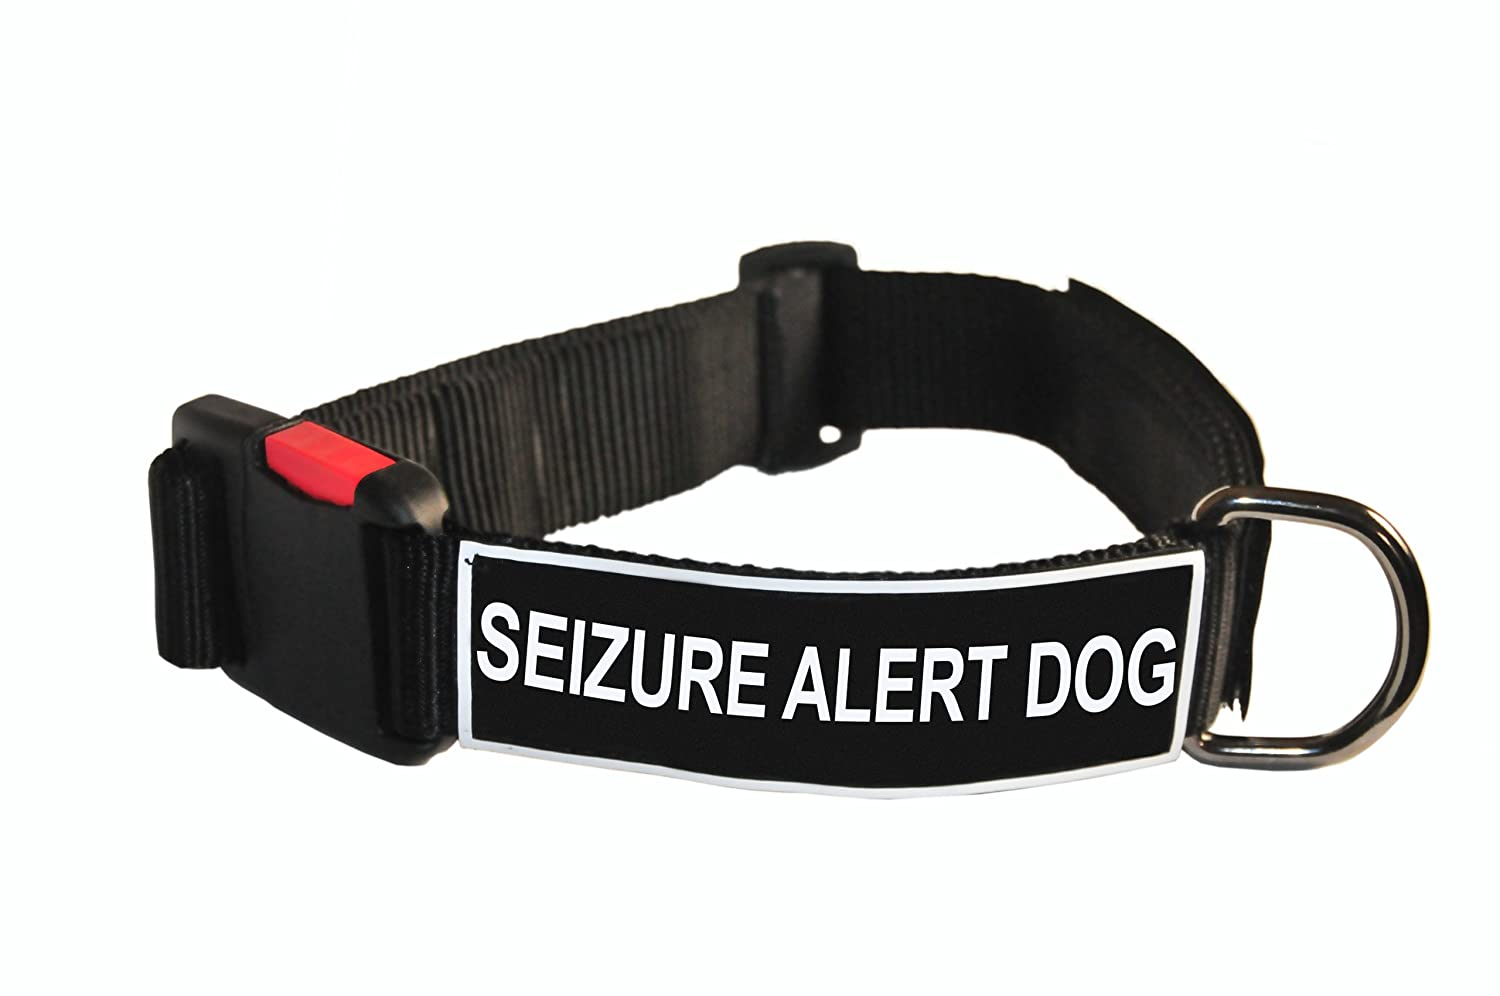 Dean and Tyler Patch Collar , Nylon Dog Collar with SEIZURE ALERT DOG Patches Black Size  Small Fits Neck 18-Inch to 21-Inch